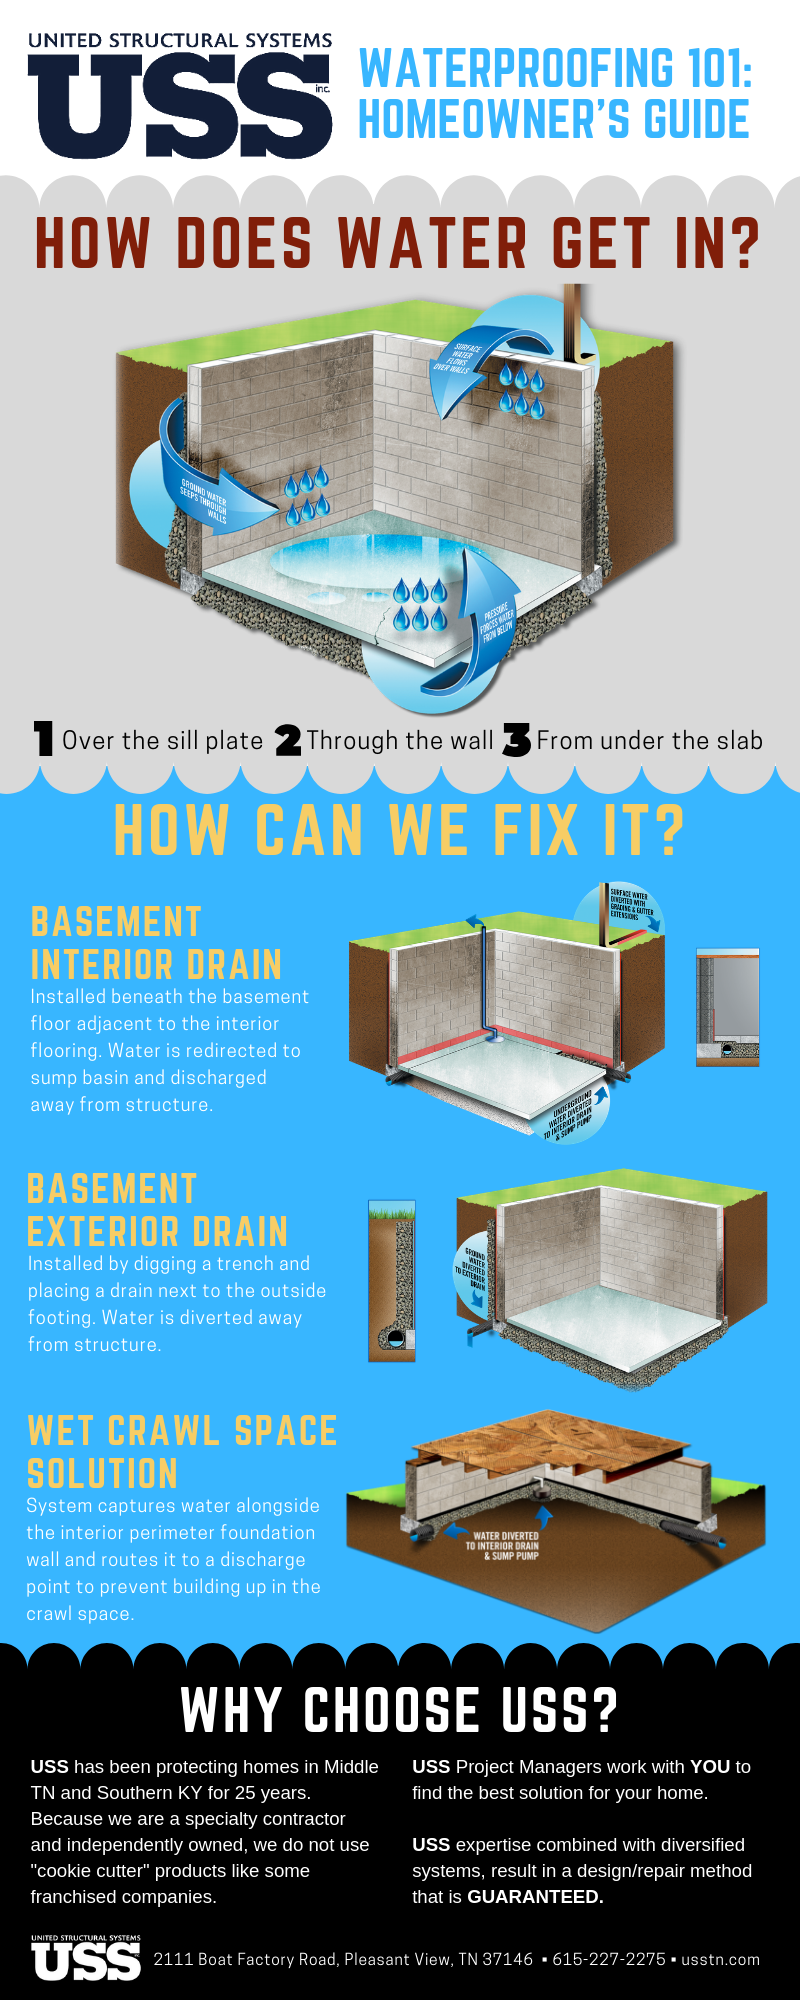 USS waterproofing 101 infographic